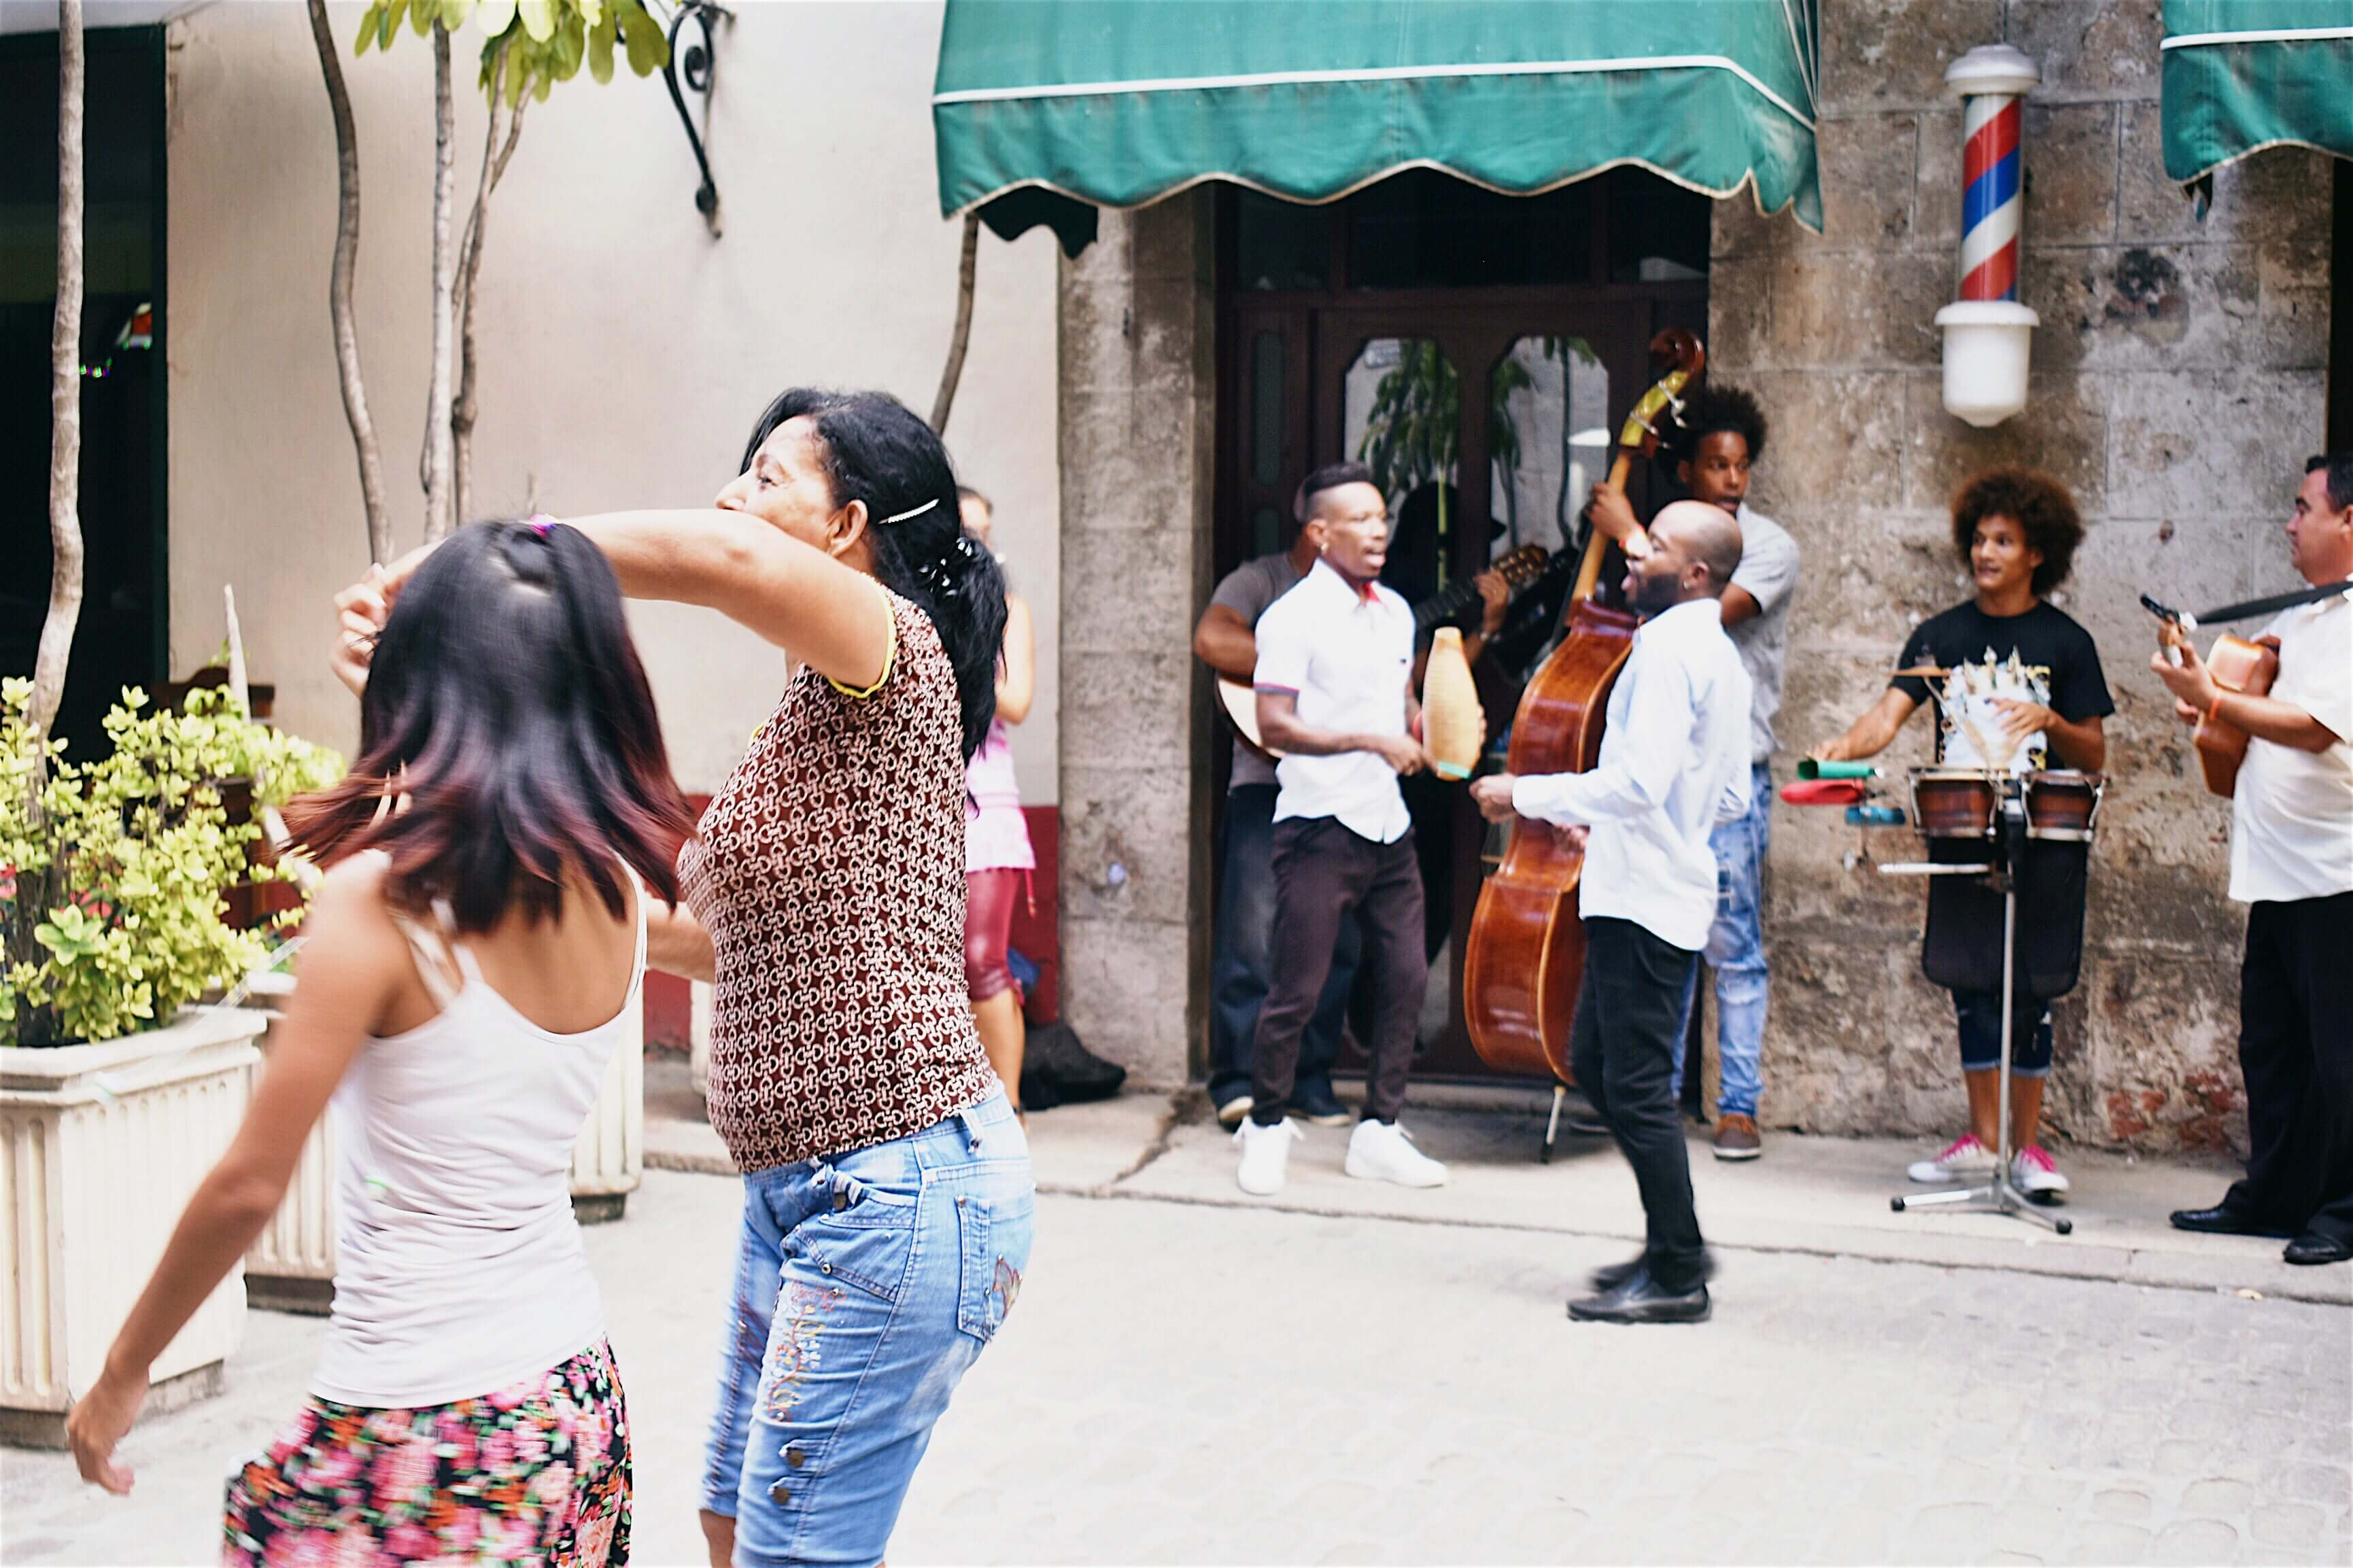 People singing and dancing salsa on the streets